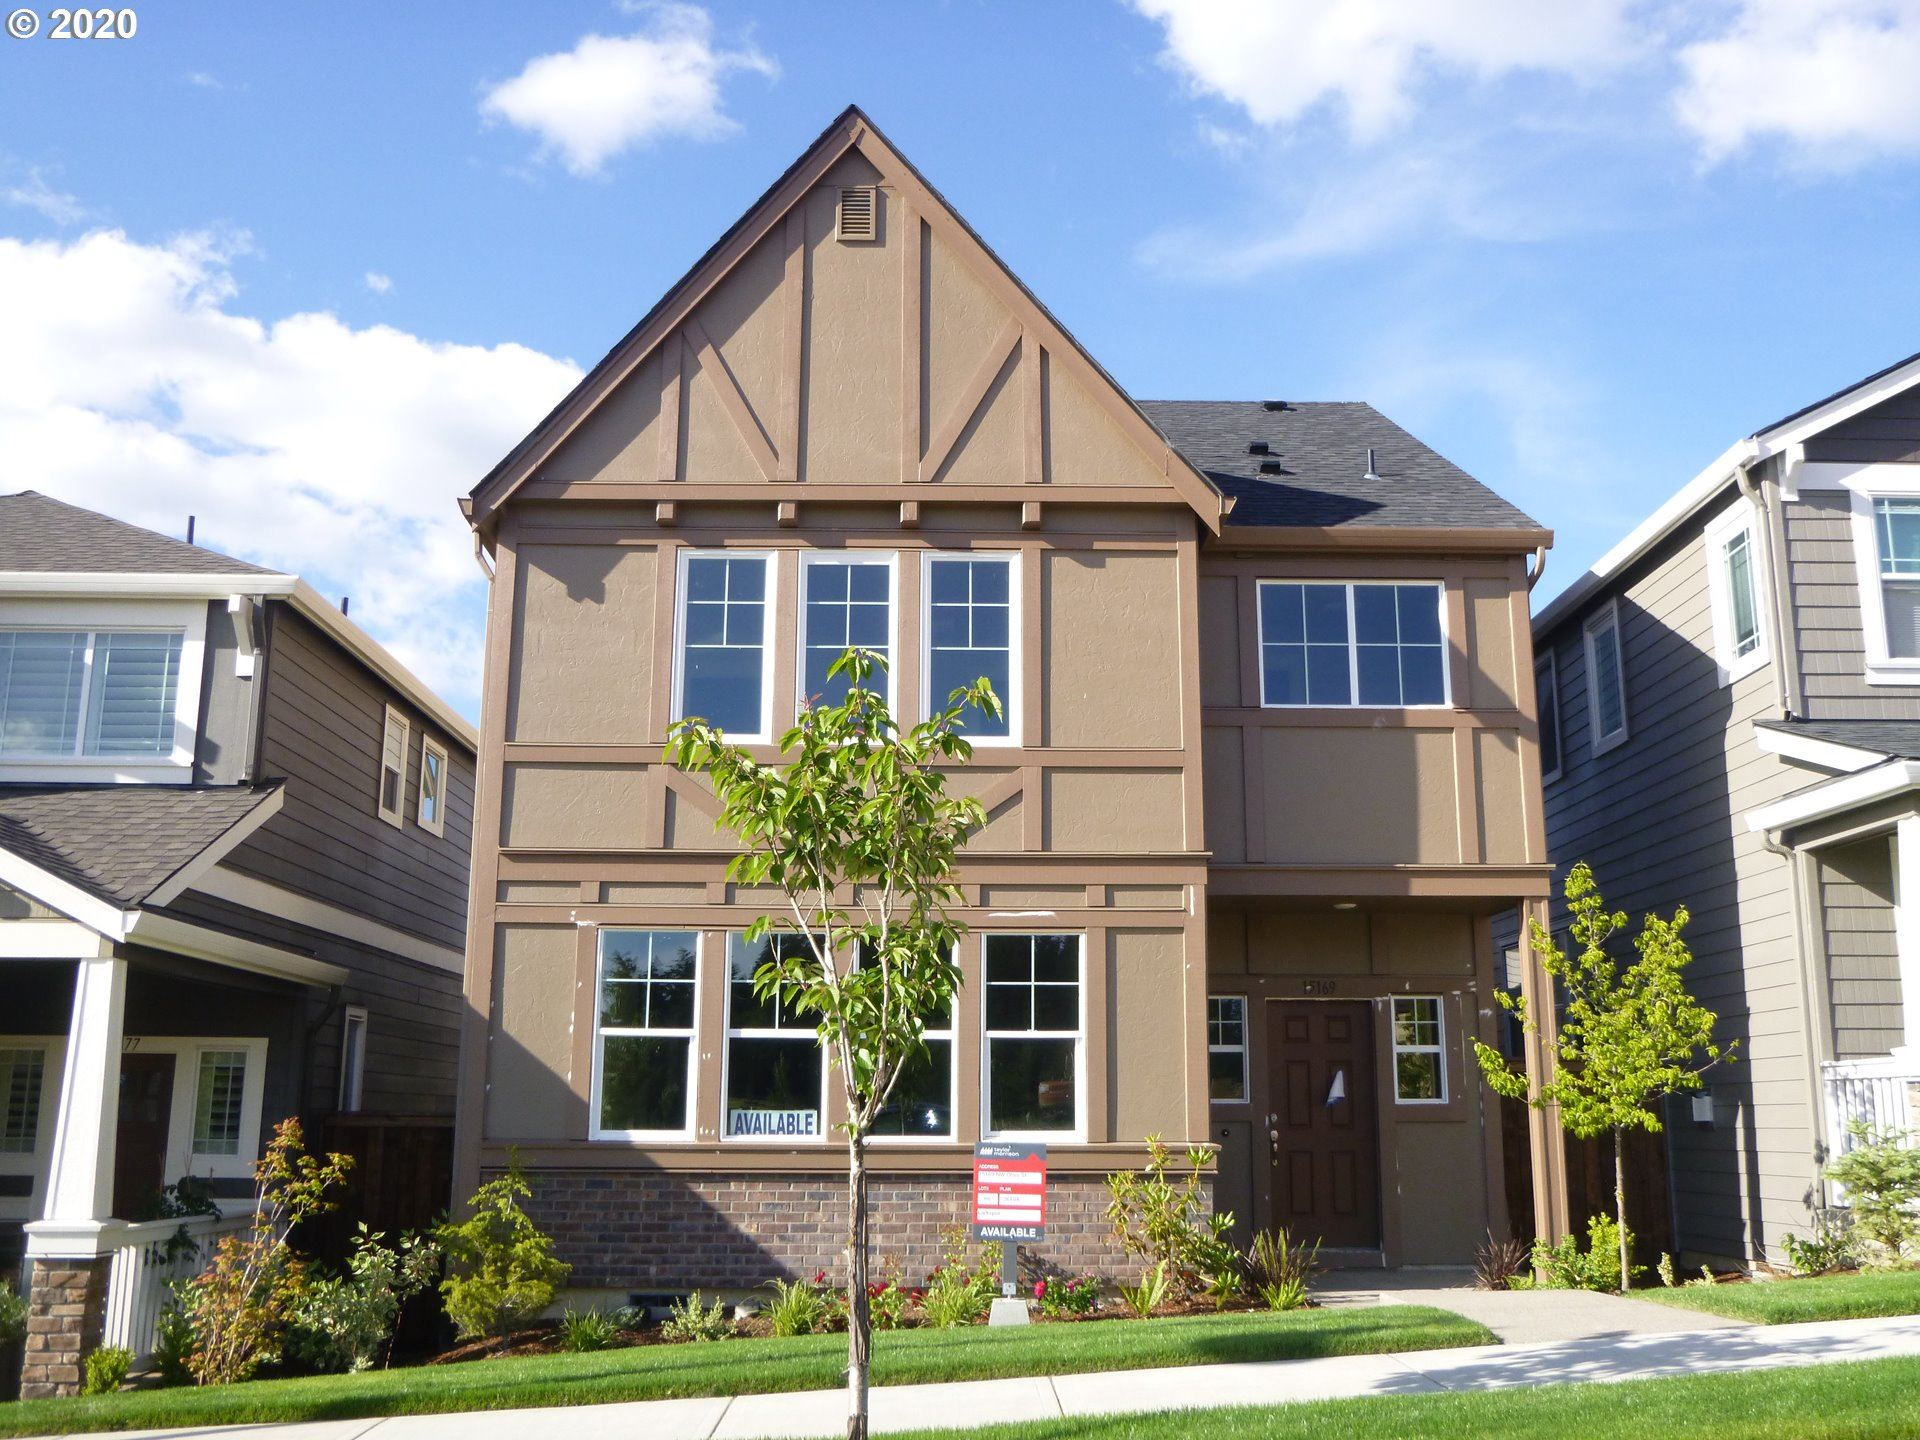 15210 NW OLIVE ST, Portland, OR 97229 - MLS#: 20394309